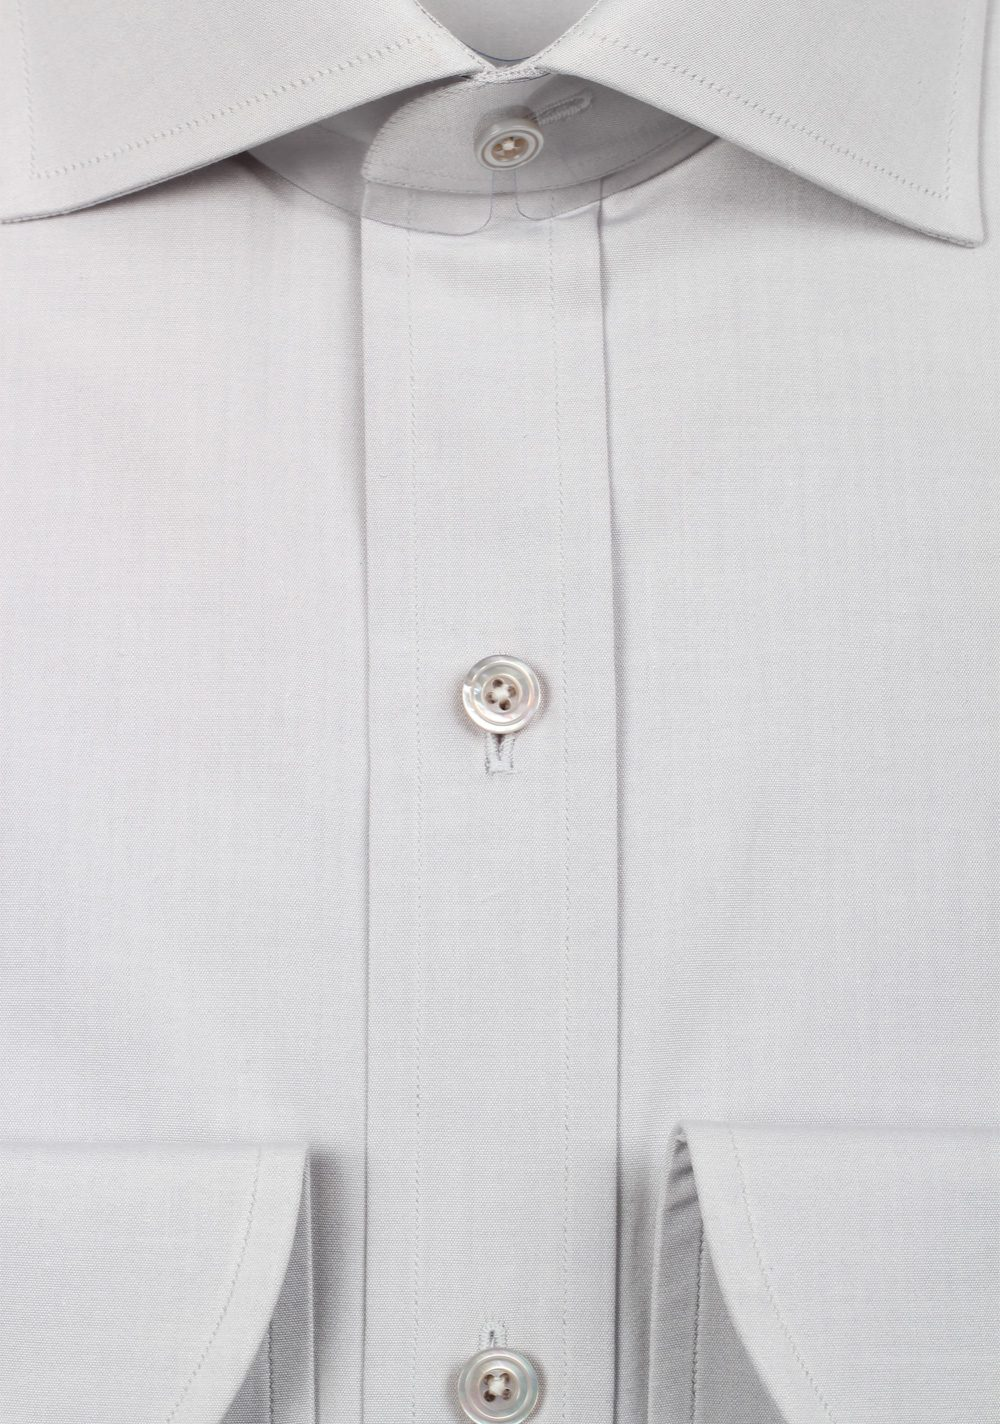 TOM FORD Solid Gray Dress Shirt Size 40 / 15,75 U.S. | Costume Limité